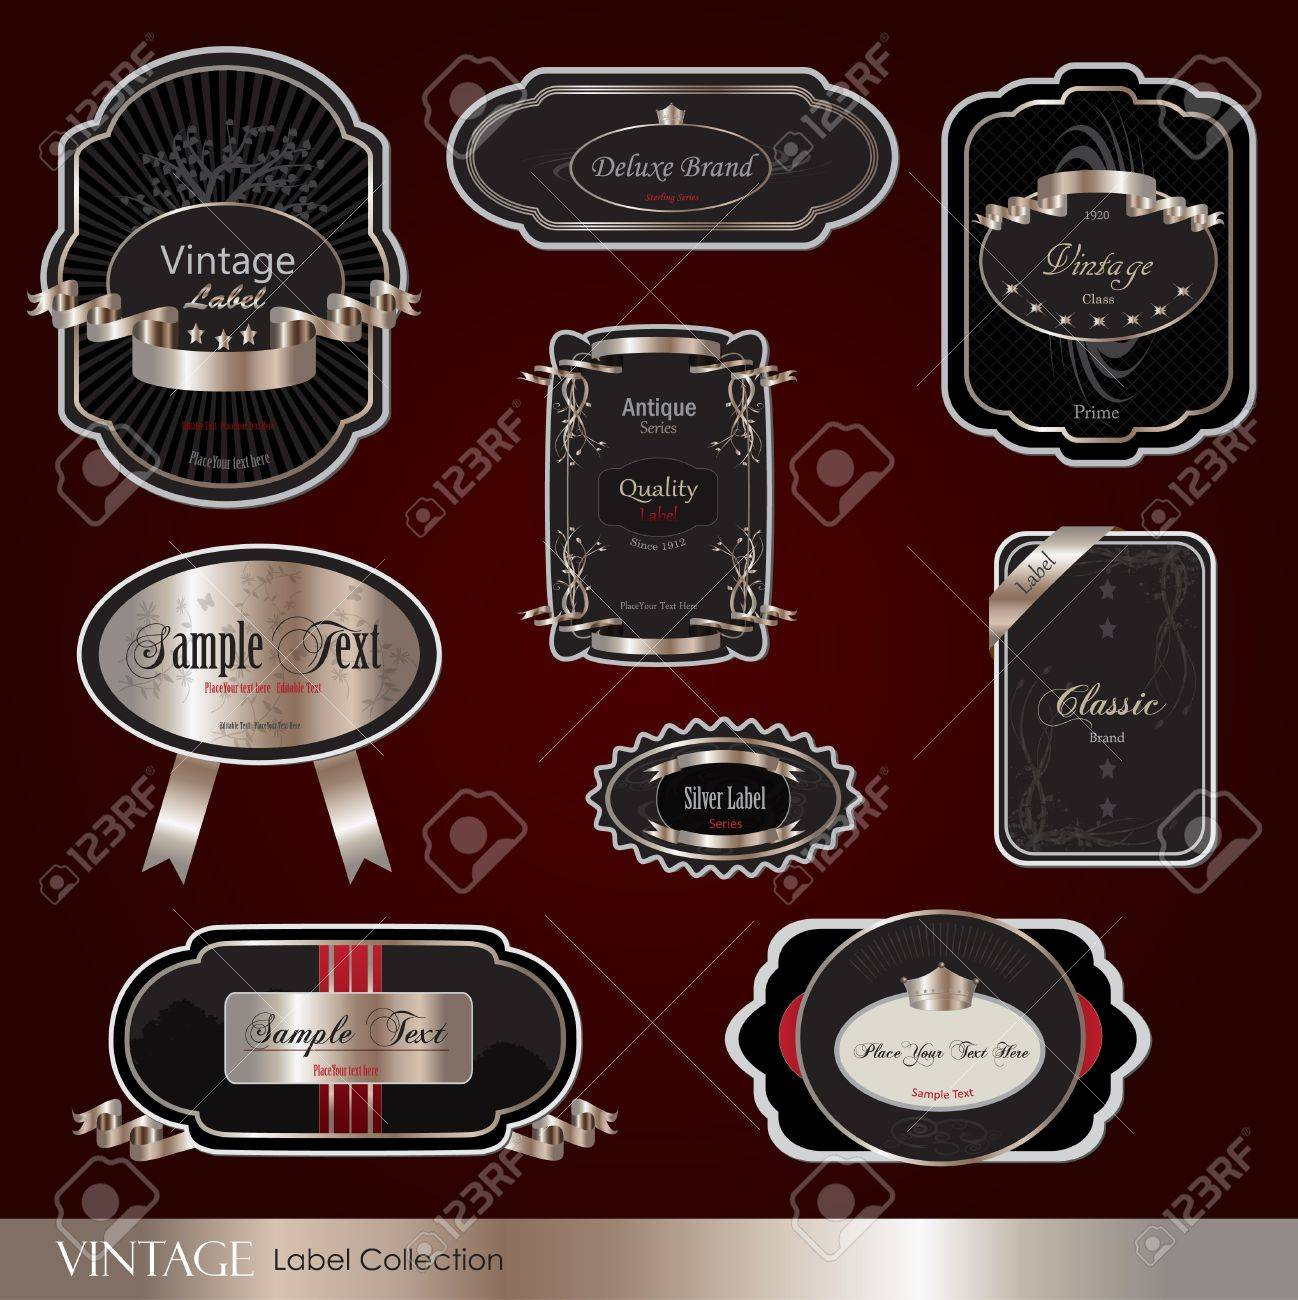 Image of various colorful vintage labels on a maroon background. - 9454903